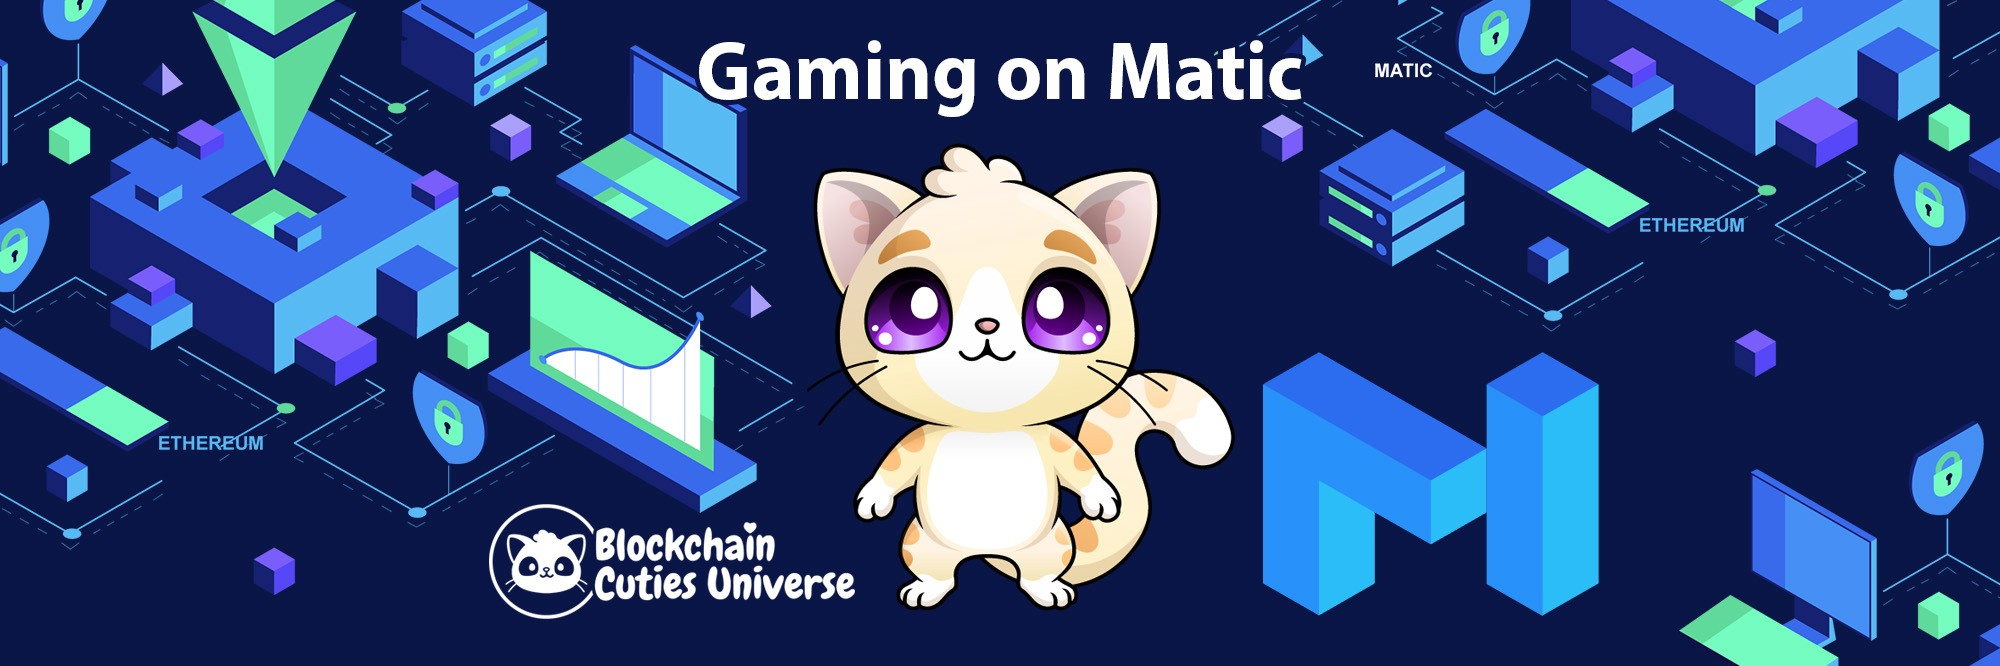 What Gaming on Matic Will Be Like?